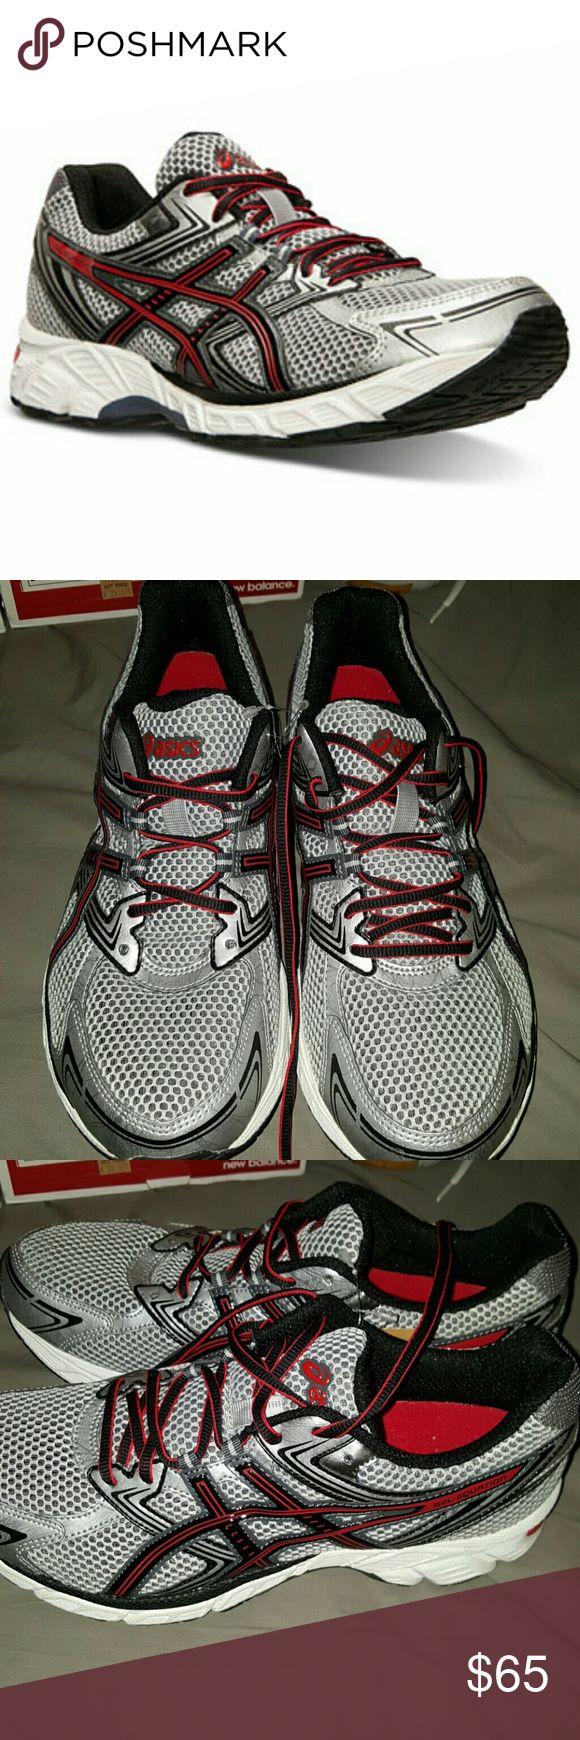 ASICS Gel-Equation 7 Neutral Running Shoe Wide New but without box     Neutral running     - Round toe     - Mesh upper     - Lace-up closure     - GEL Cushioning System insole     - Padded tongue and collar     - Grip sole     - Imported Materials     Synthetic upper, rubber sole Asics Shoes Athletic Shoes